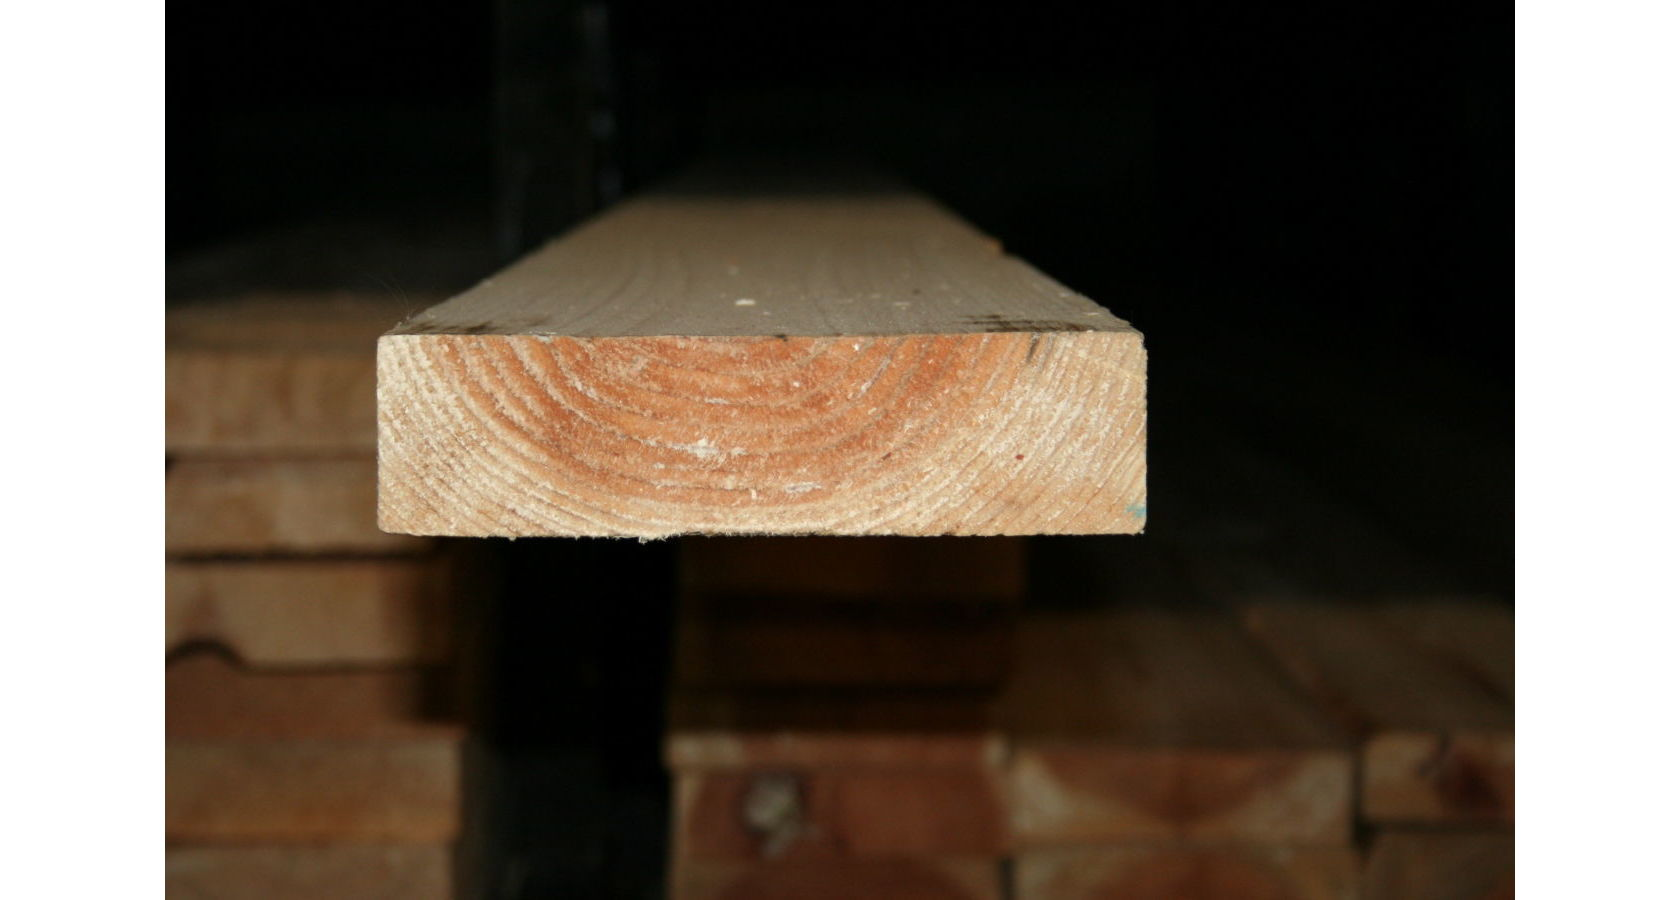 7x2 R/S Regularised Graded Building Timber (44x173mm ex 50x175mm) under 4.8M.